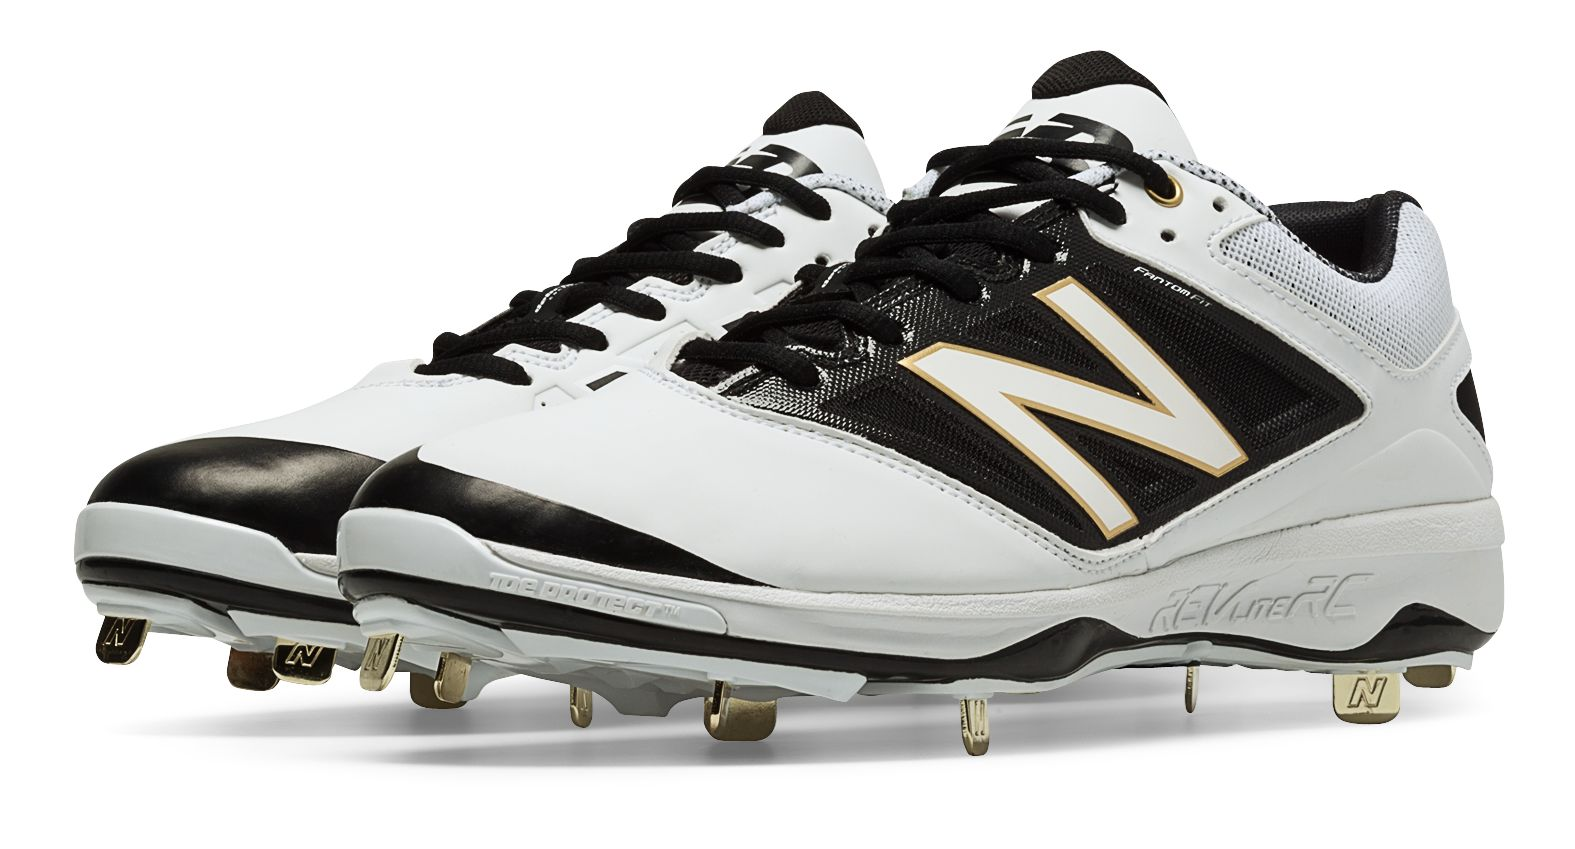 3N2 5345-06-75 Dom-N-8 Metal Fastpitch Cleats, White - Size 7.5